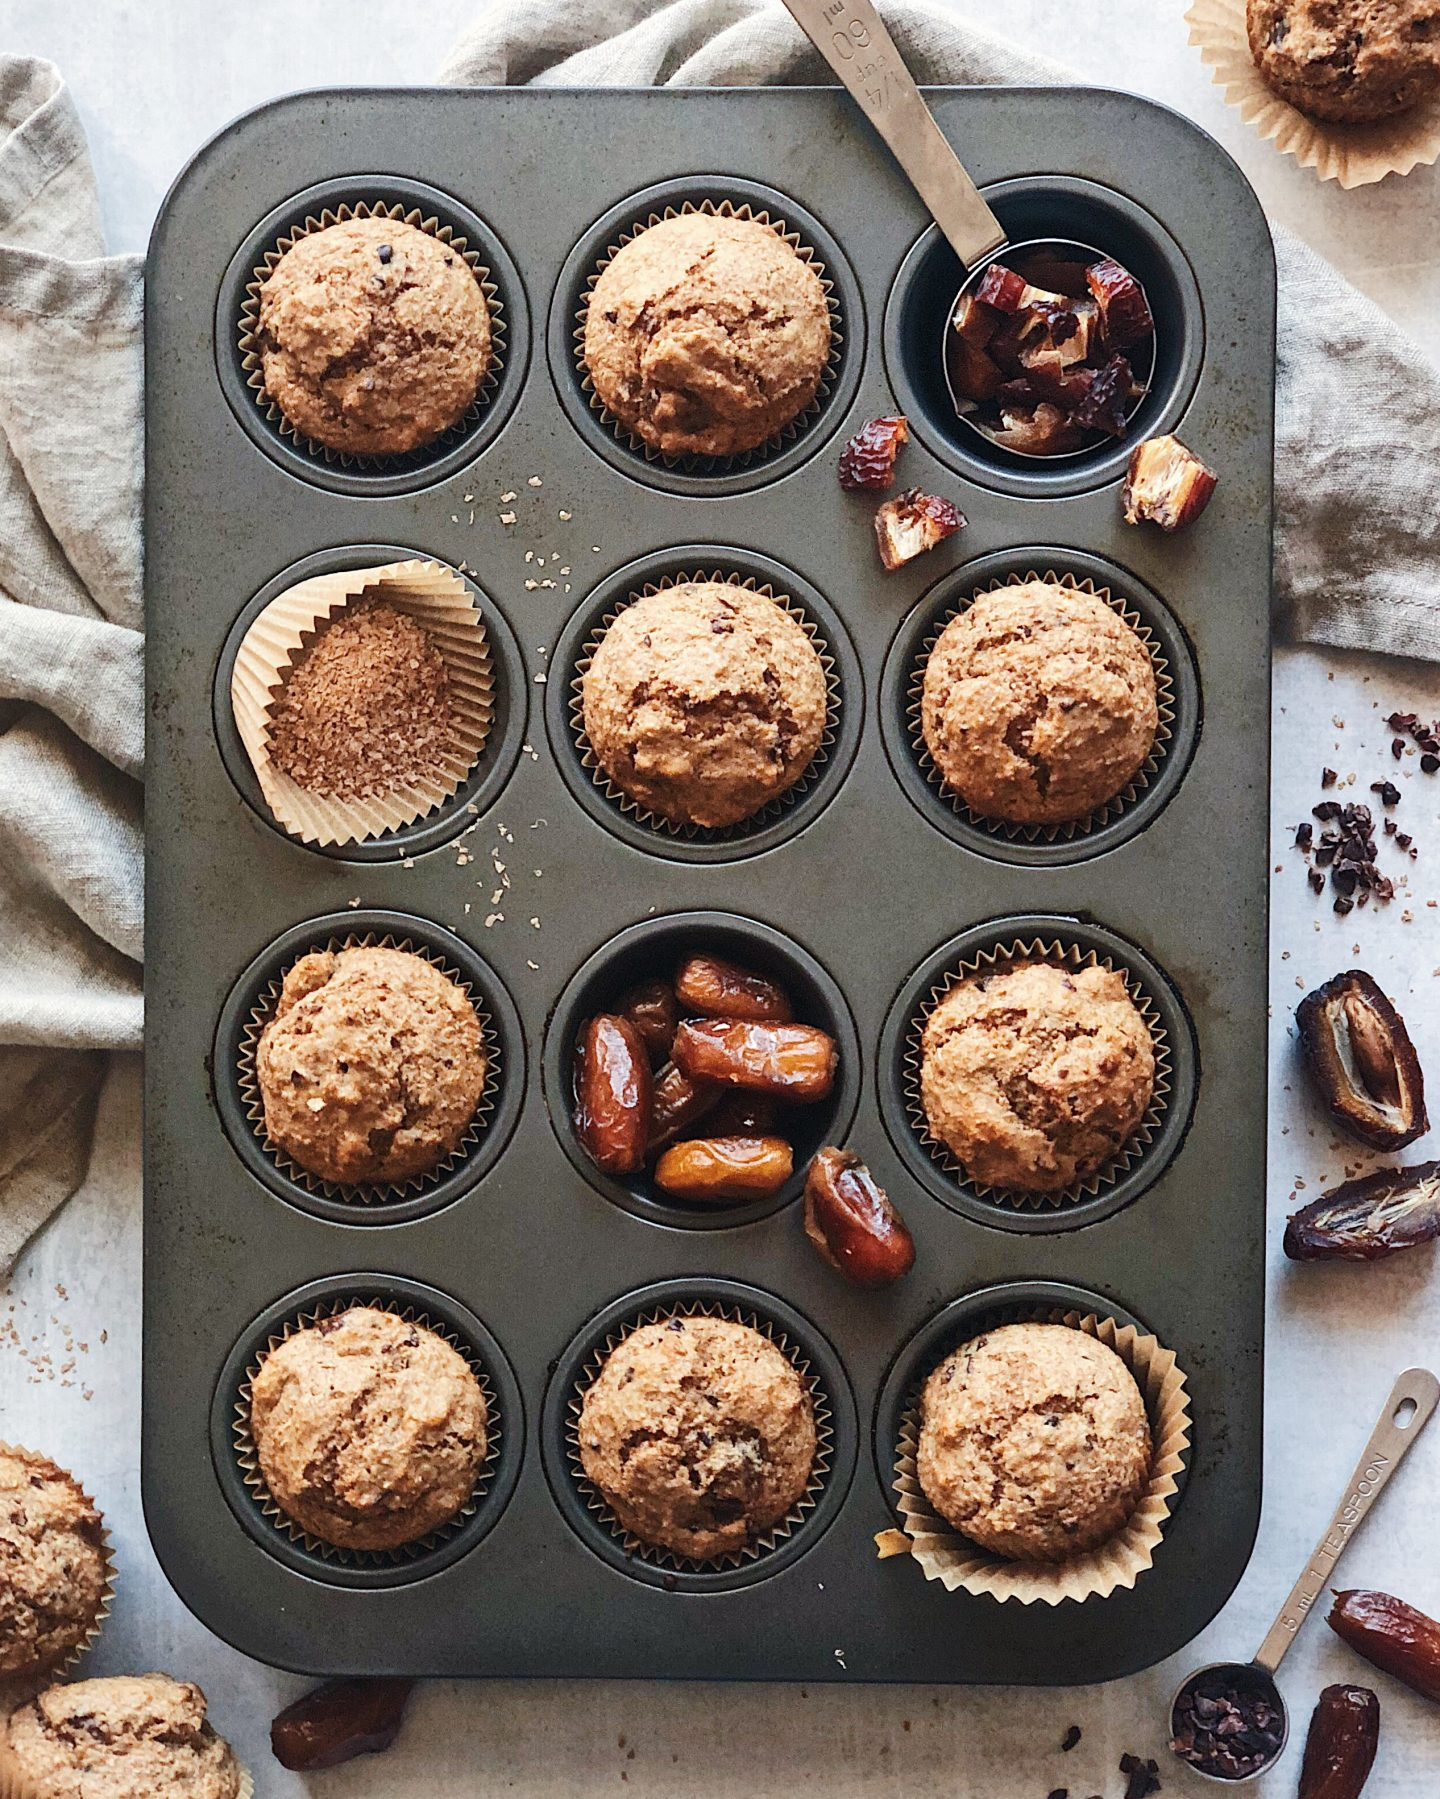 Date and Cacao Bran Muffins